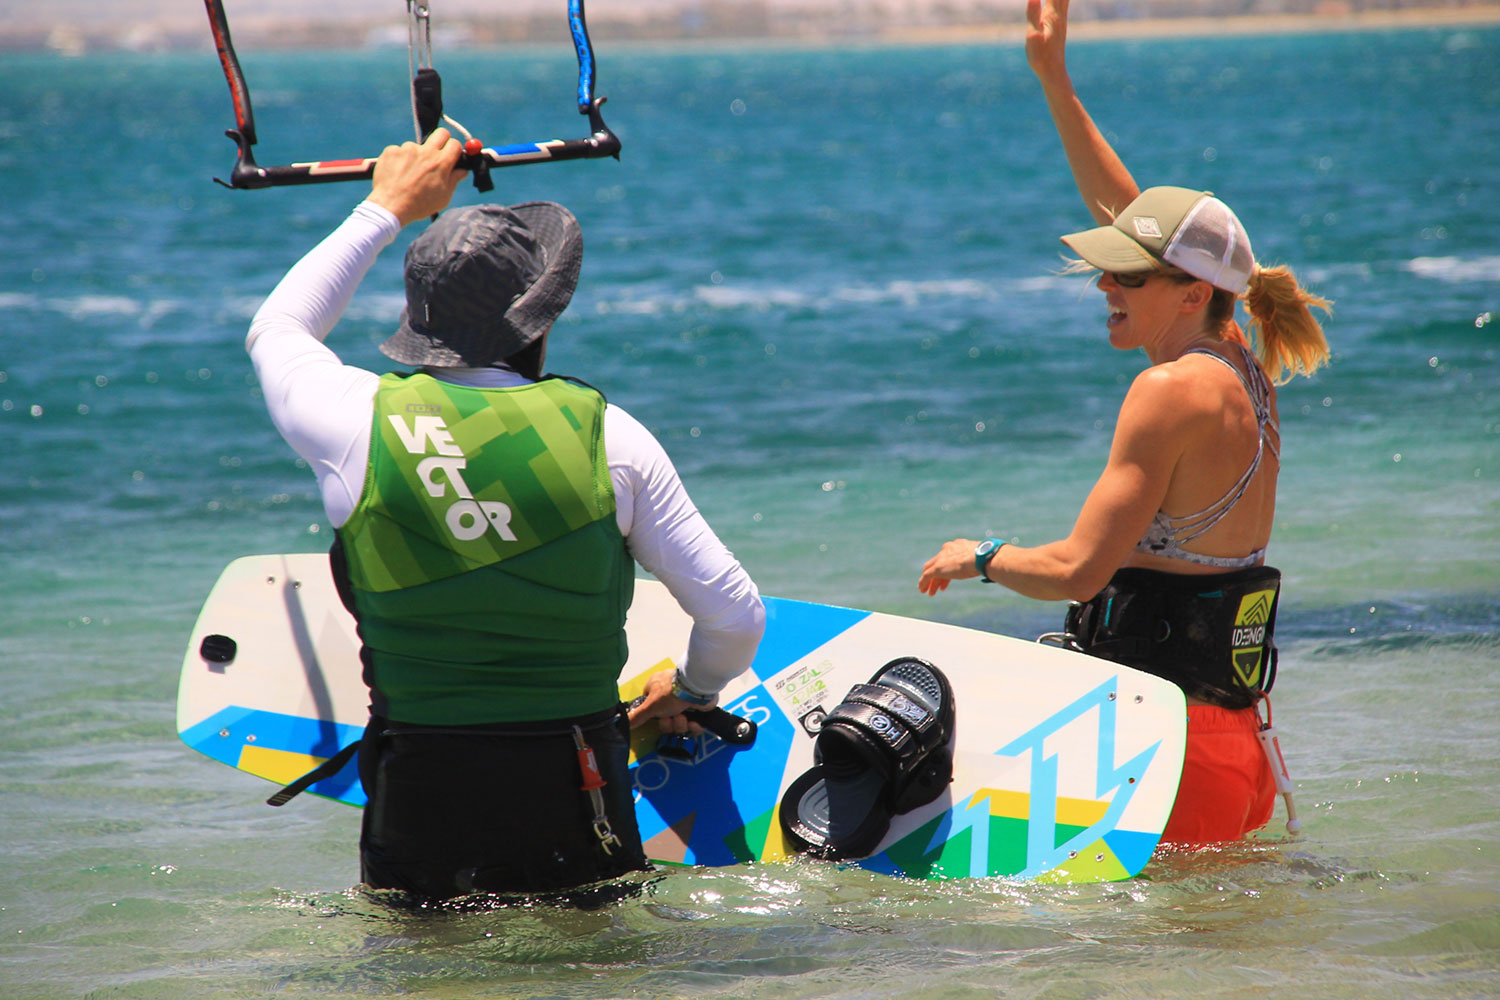 Kitesurfing-coaching-holidays-visualisation-and-tips-on-the-beach.jpg